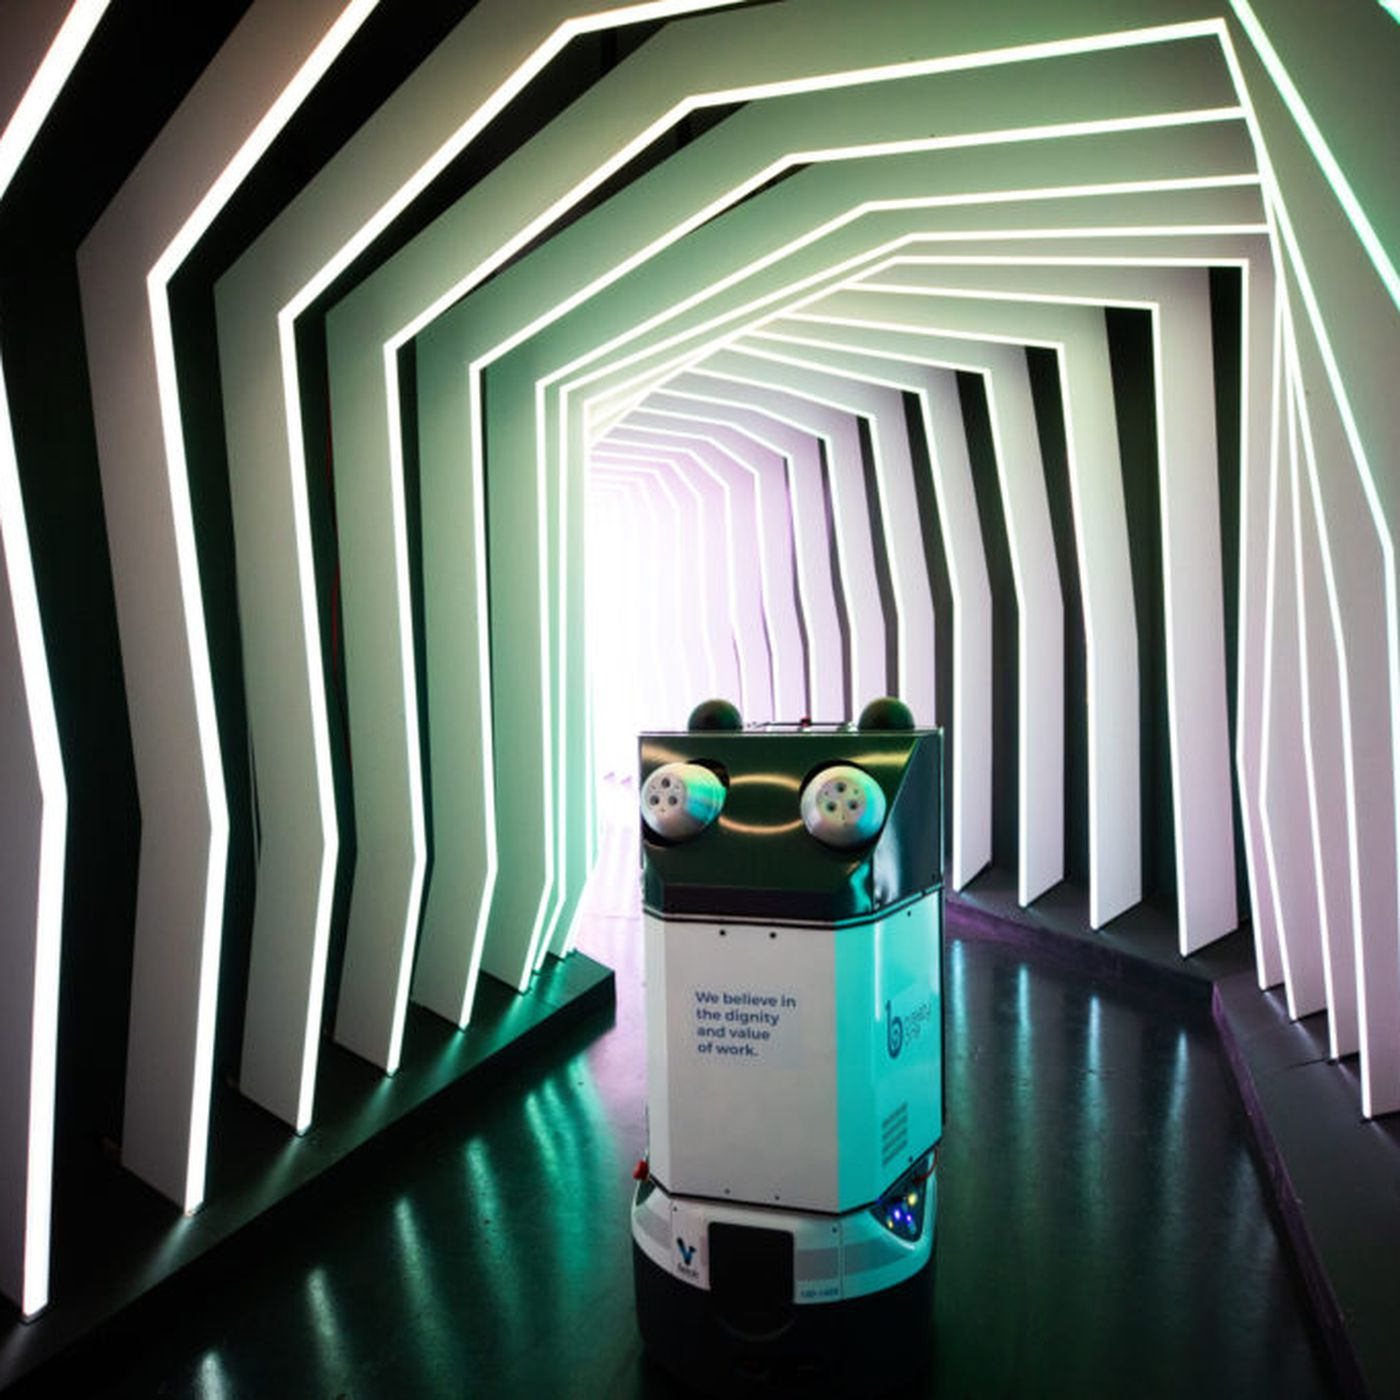 Advantages of Using UV Germ-Killing Robots at Workplace